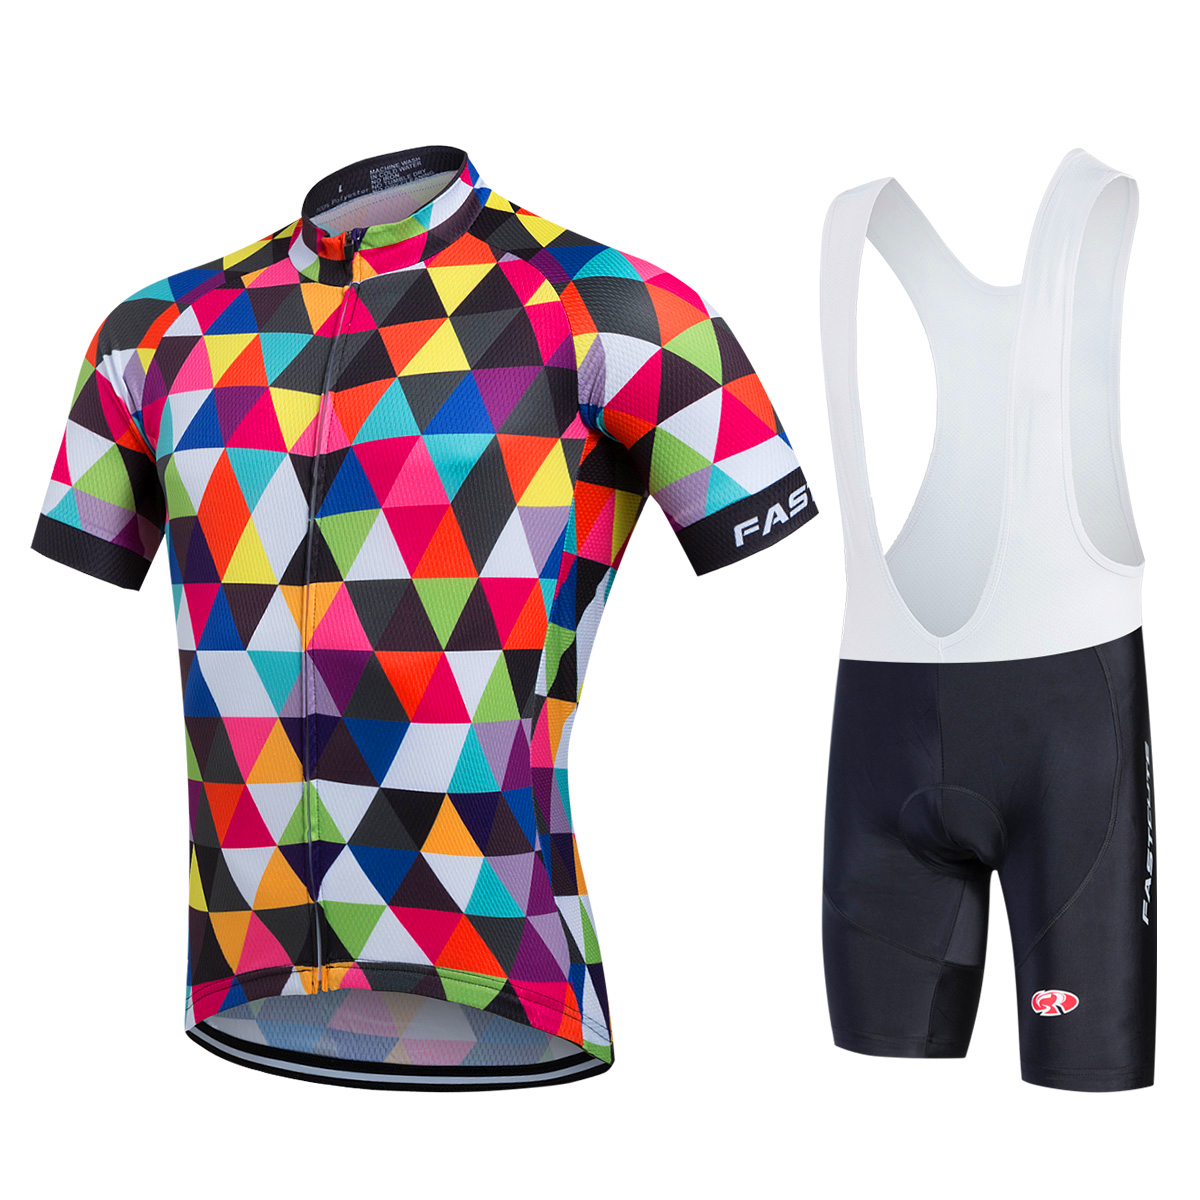 FASTCUTE Cycling Jersey Multicolor Bicycle Bike Short Sleeve Sportswear Cycling  Clothing maillot Cycling Jerseys set 62490d475